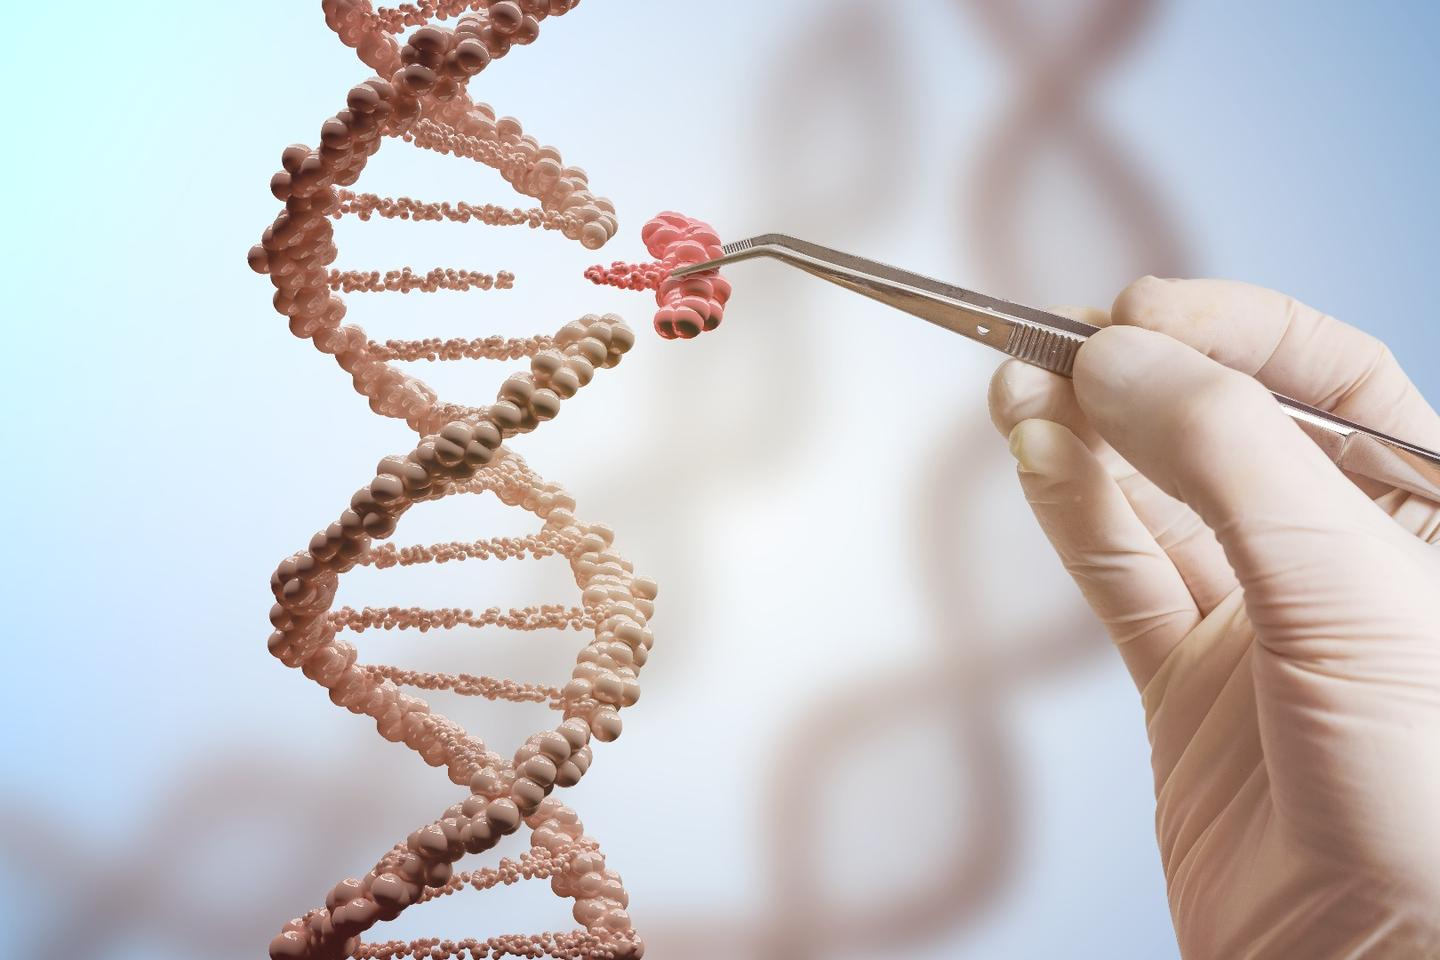 Researchers have used CRISPR-Cas9 to target DNA sequences specific to cancer, shrinking tumors and improving the survival rates of cancer-stricken mice